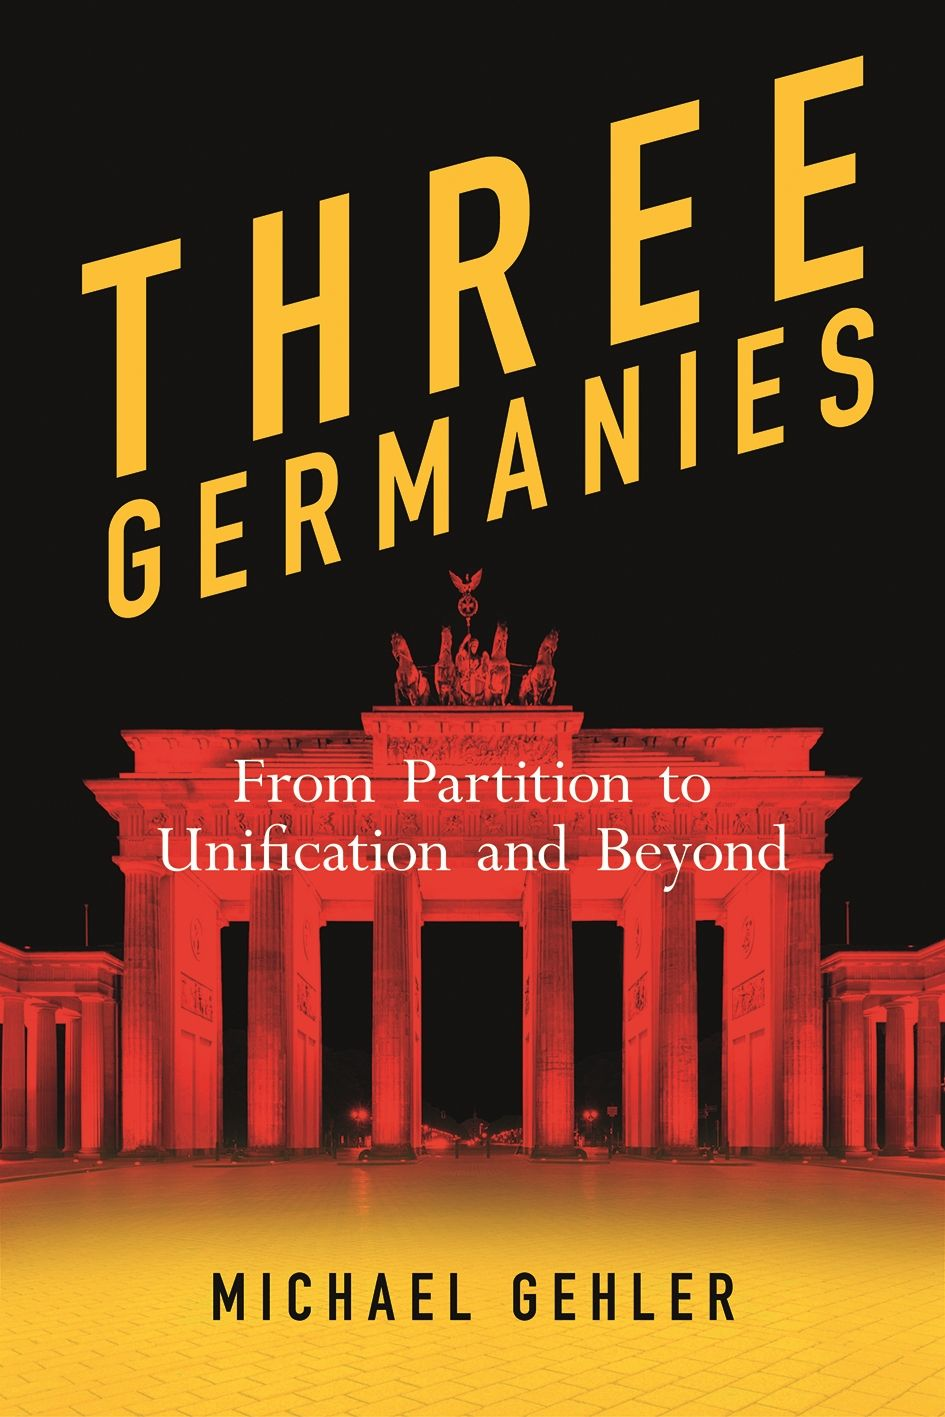 Three Germanies: From Partition to Unification and Beyond, Second Expanded Edition